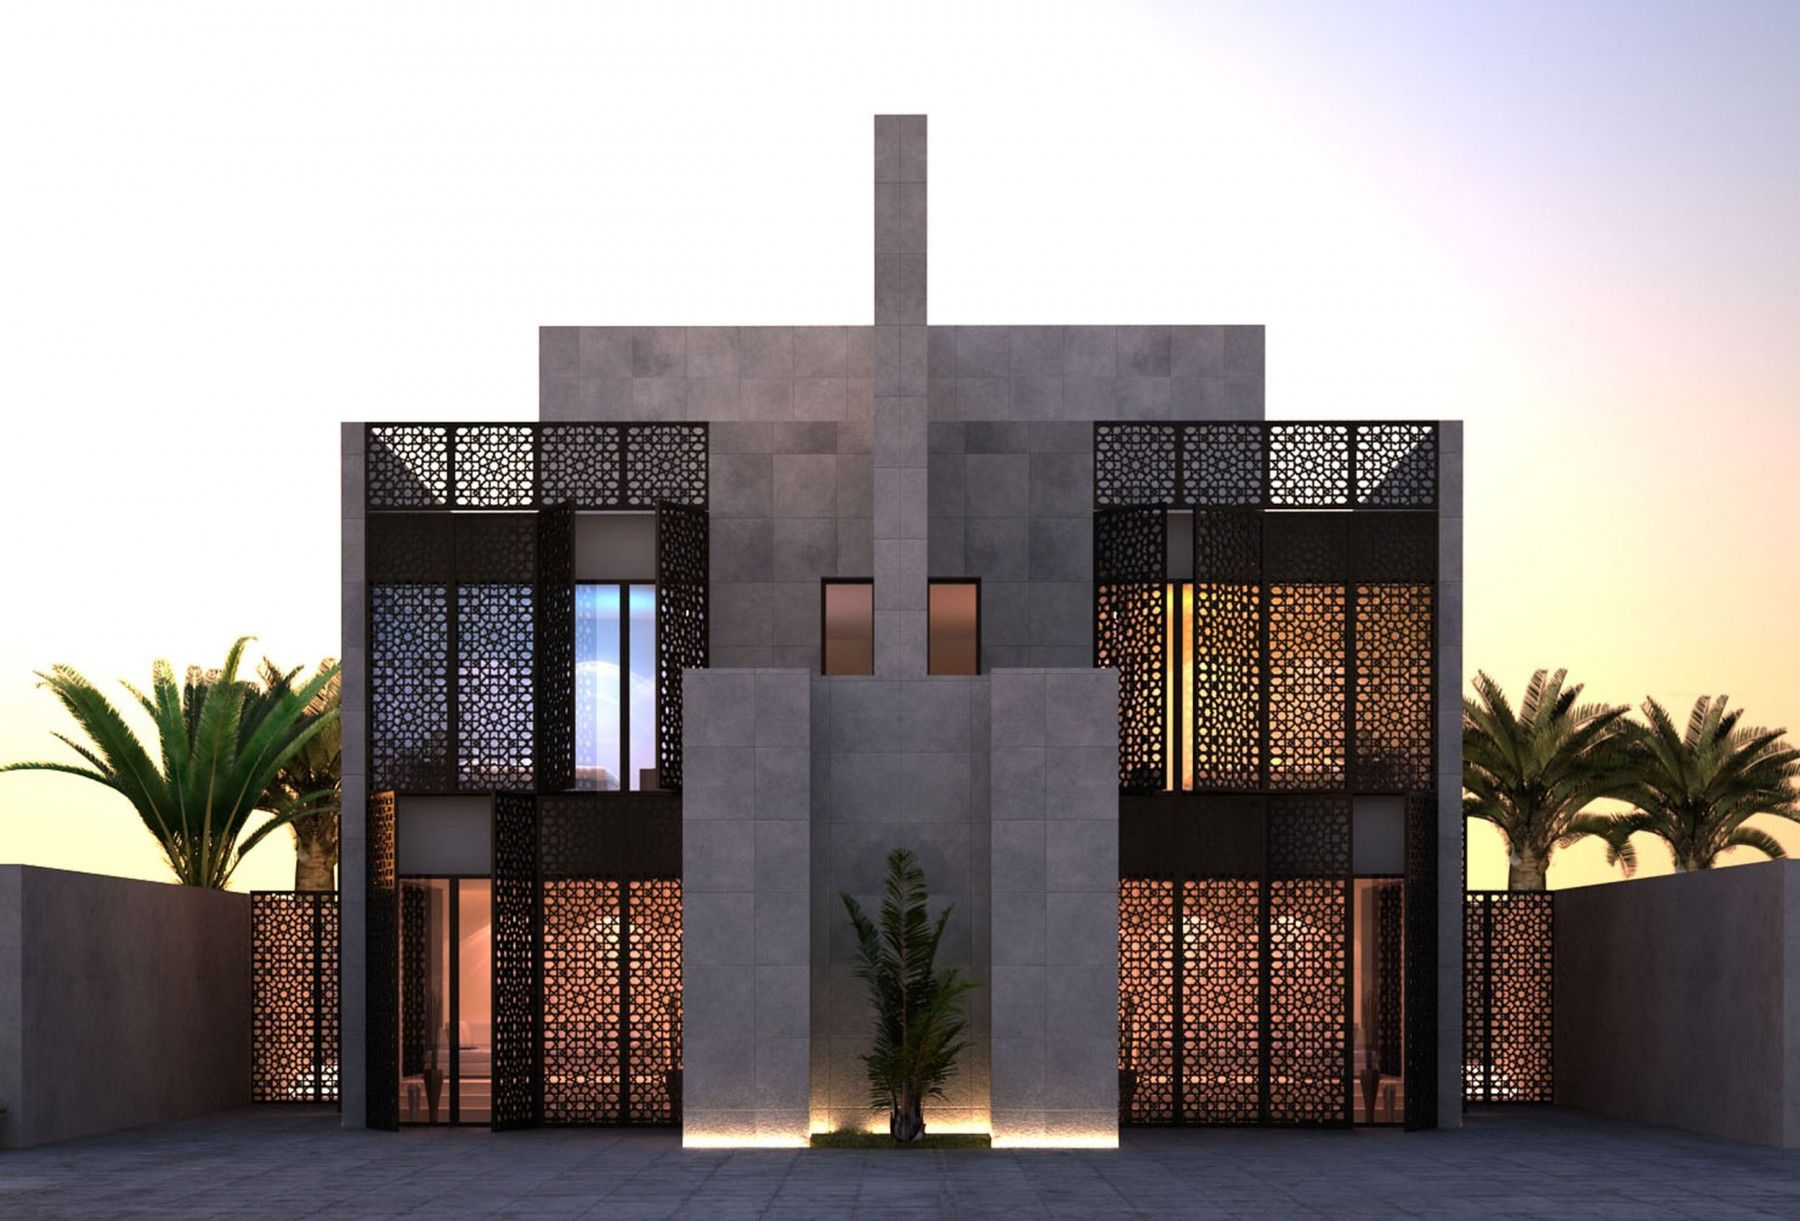 Top international architecture design jeddah housing - Architecture and design ...